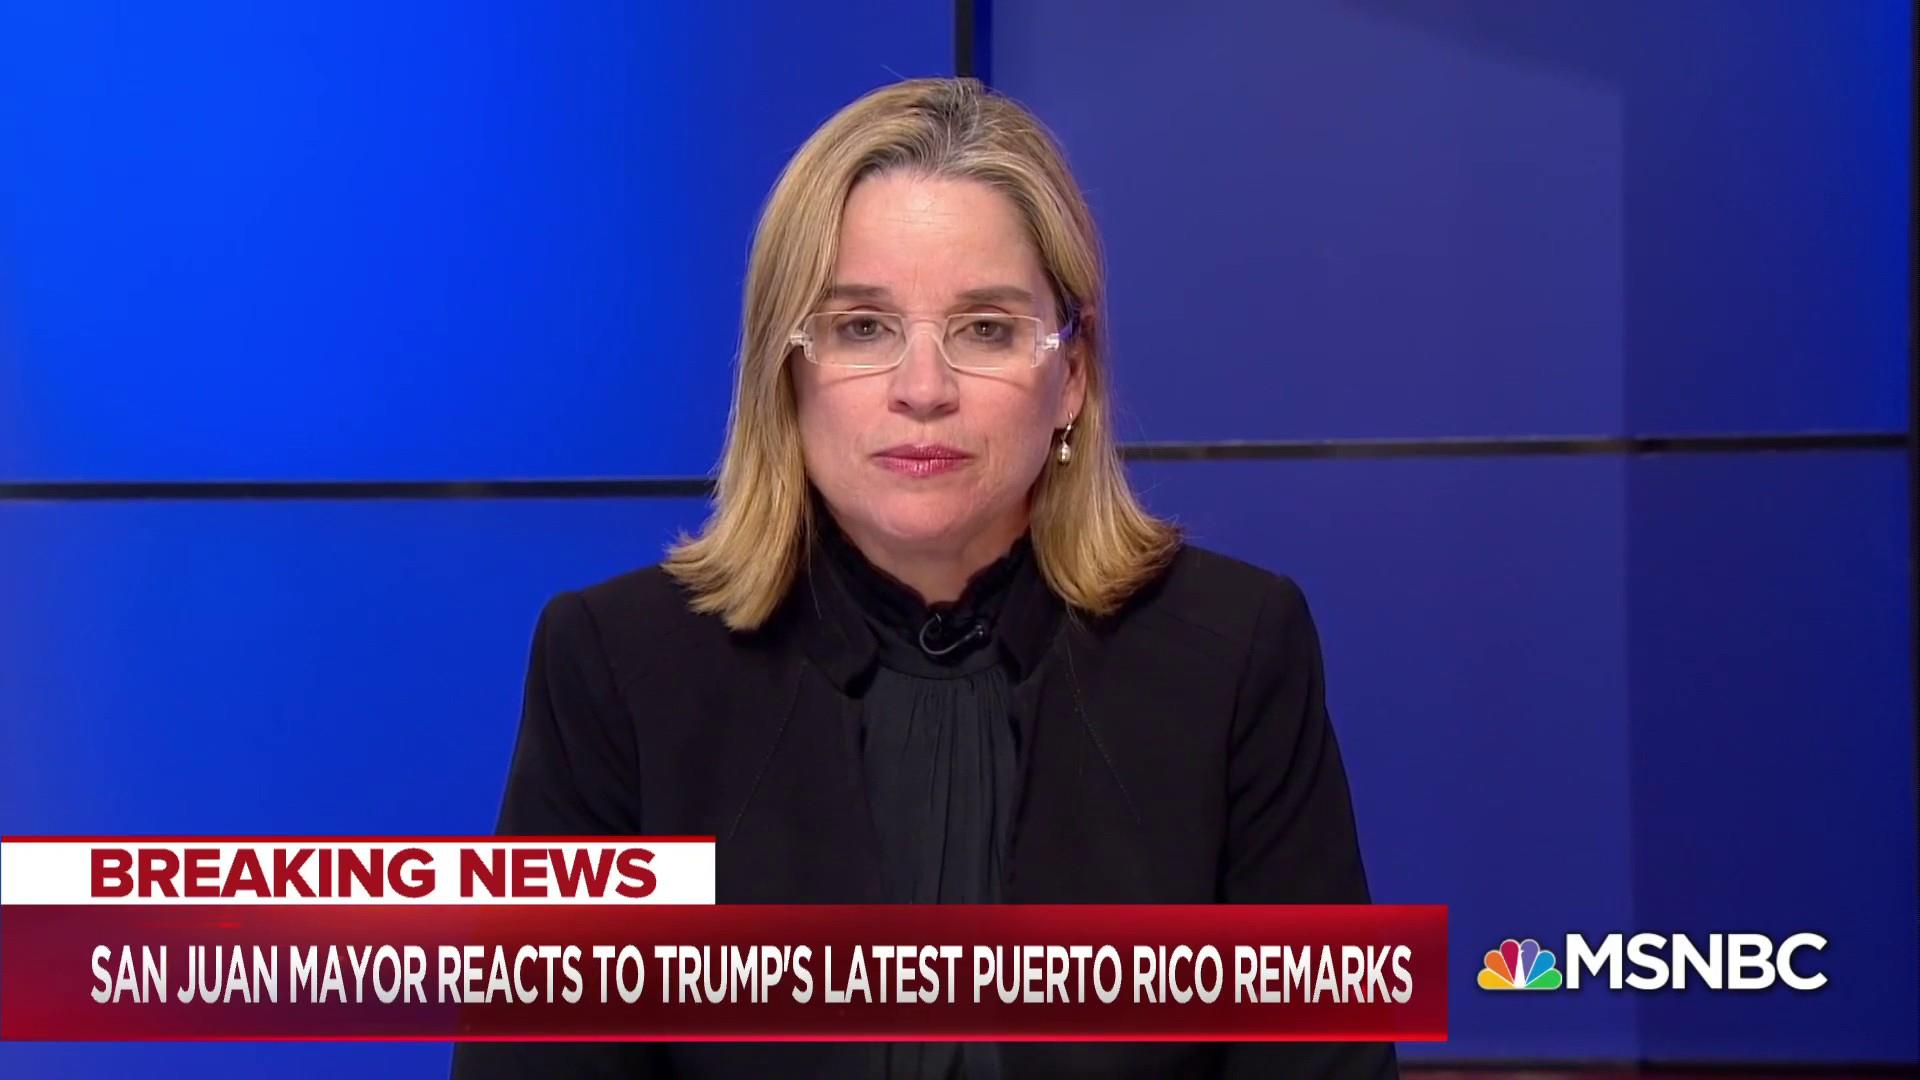 Puerto Rico Mayor: Trump's response is 'undignified'